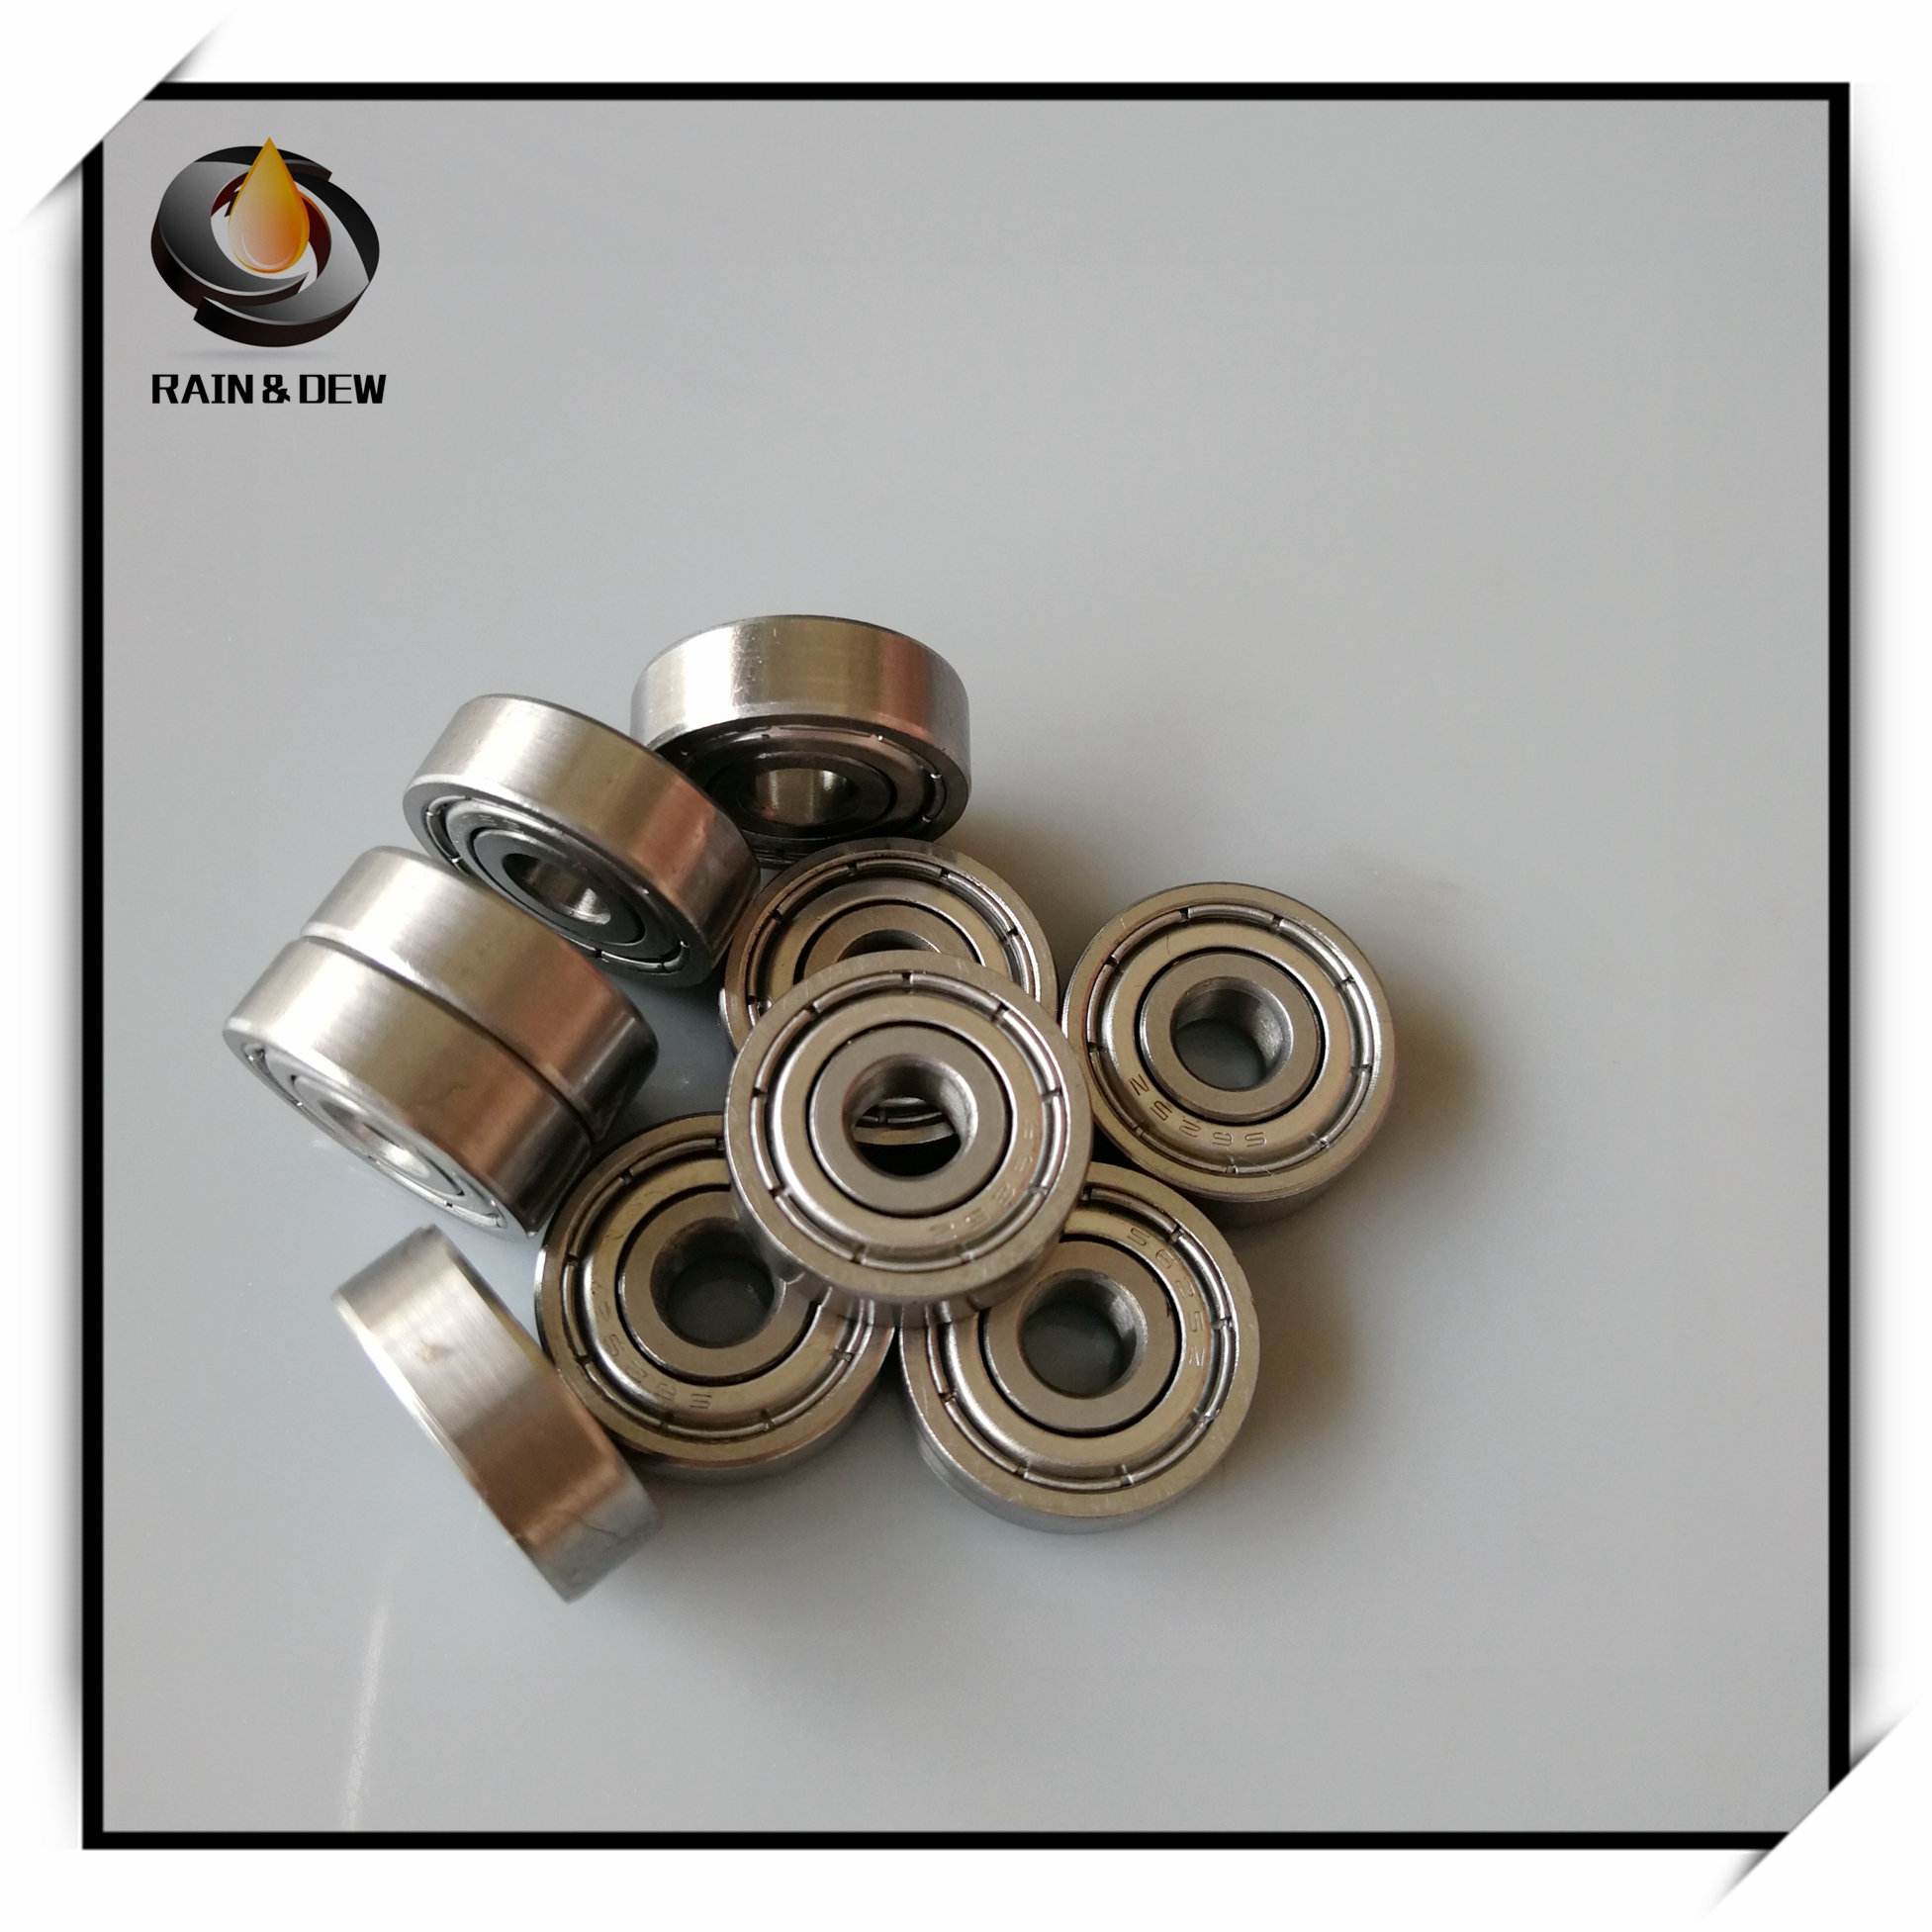 10Pcs S 625 ZZ Stainless Steel Ball Bearing ABEC-7 5x16x5 mm For VORON Mobius 2/3 3D Printer Makefr Rs CNC32